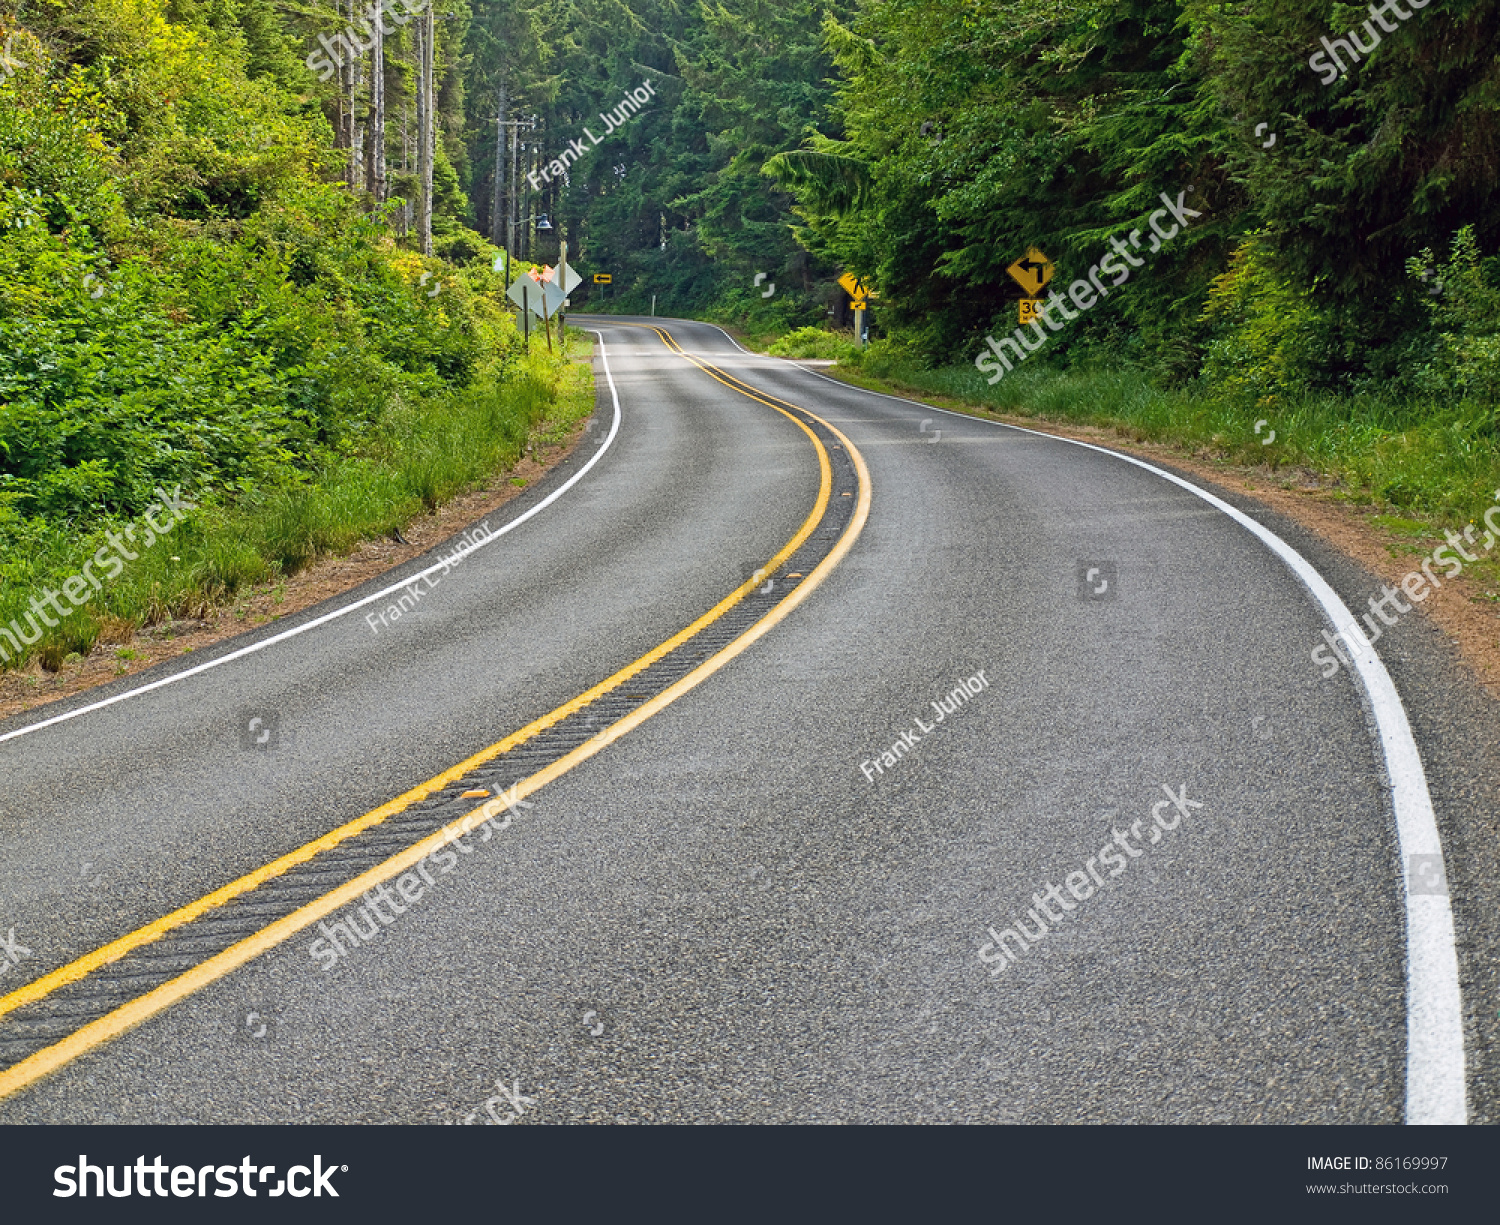 Curved Two Lane Country Road Winding Through A Forest Stock Photo 86169997 : Shutterstock